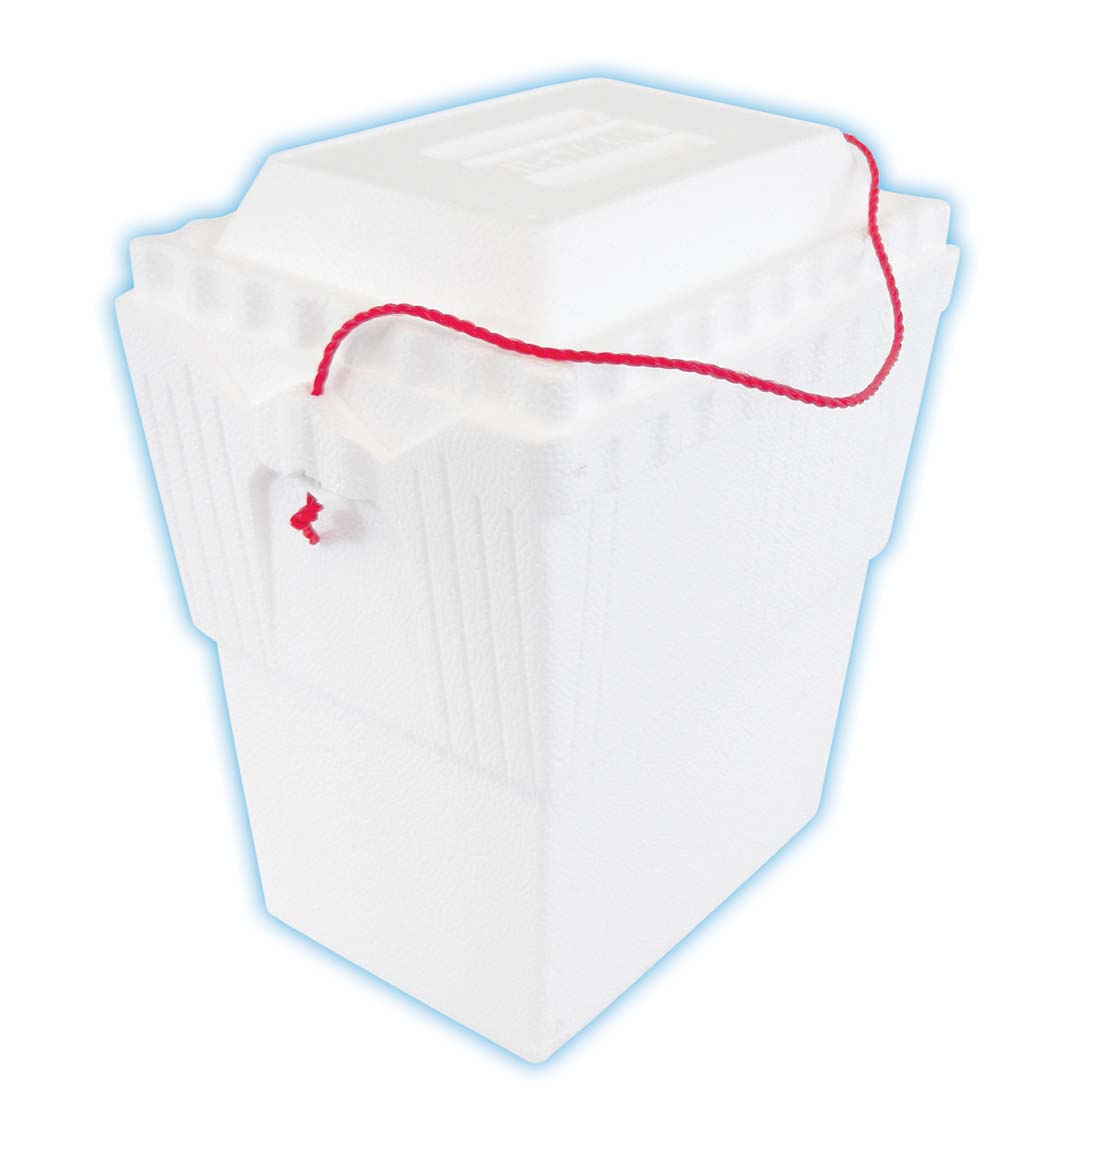 "View STYROFOAM COOLER WITH ROPE HANDLE 11 1/2"" X 8"" X 13 1/4"" HOLDS 12 CANS WHITE"